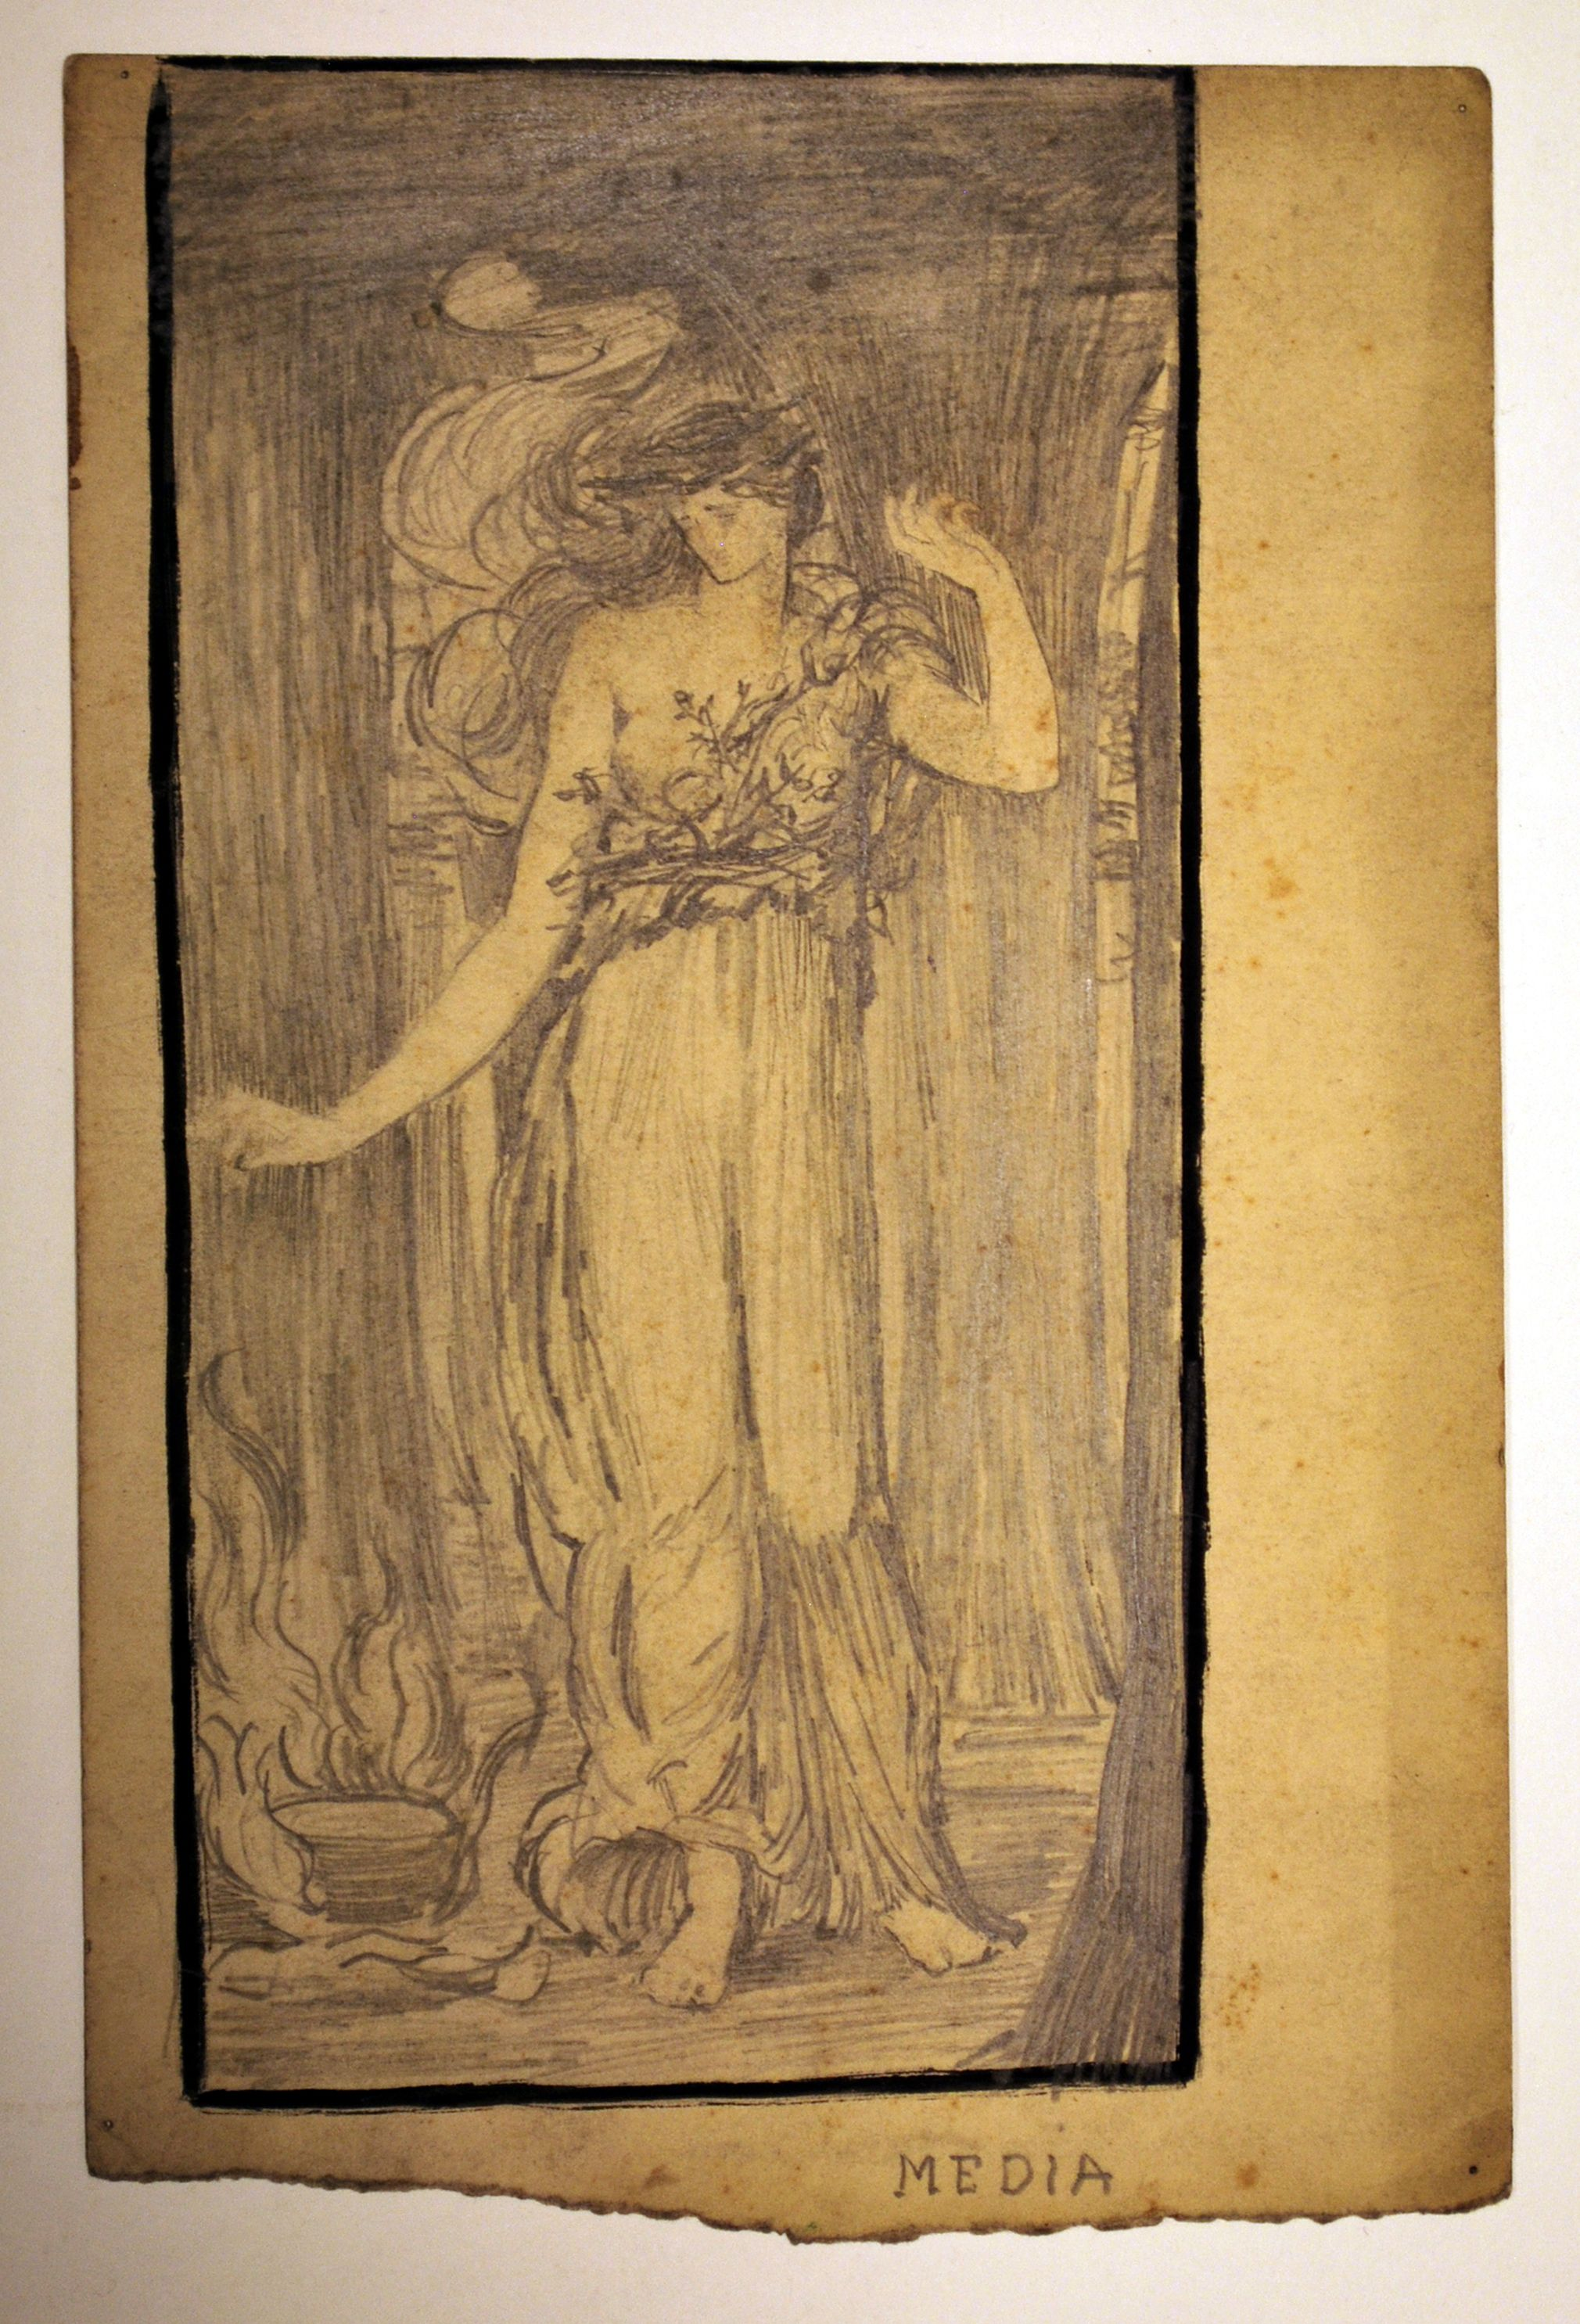 Artist: Evelyn De Morgan  Object: Study of standing female figure in drapery and vines  Museum Number: D_EDM_D0272  Dates: 1873 - 1919